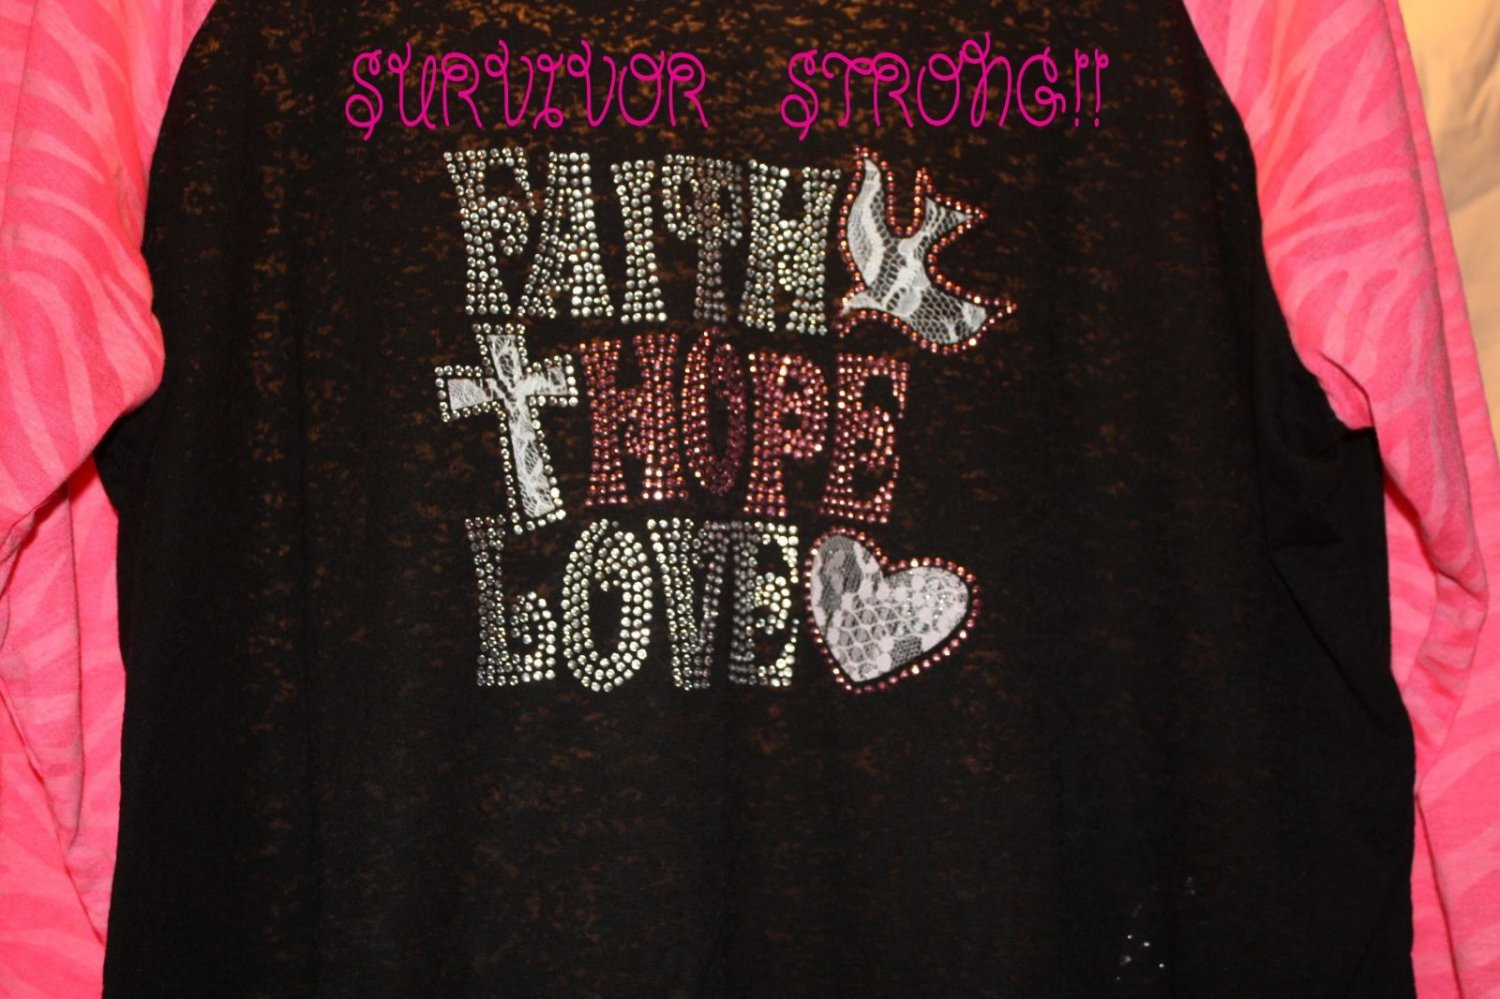 Bling Rhinestone Embellished T-shirt,New,Faith Hope Love Design, Breast Cancer